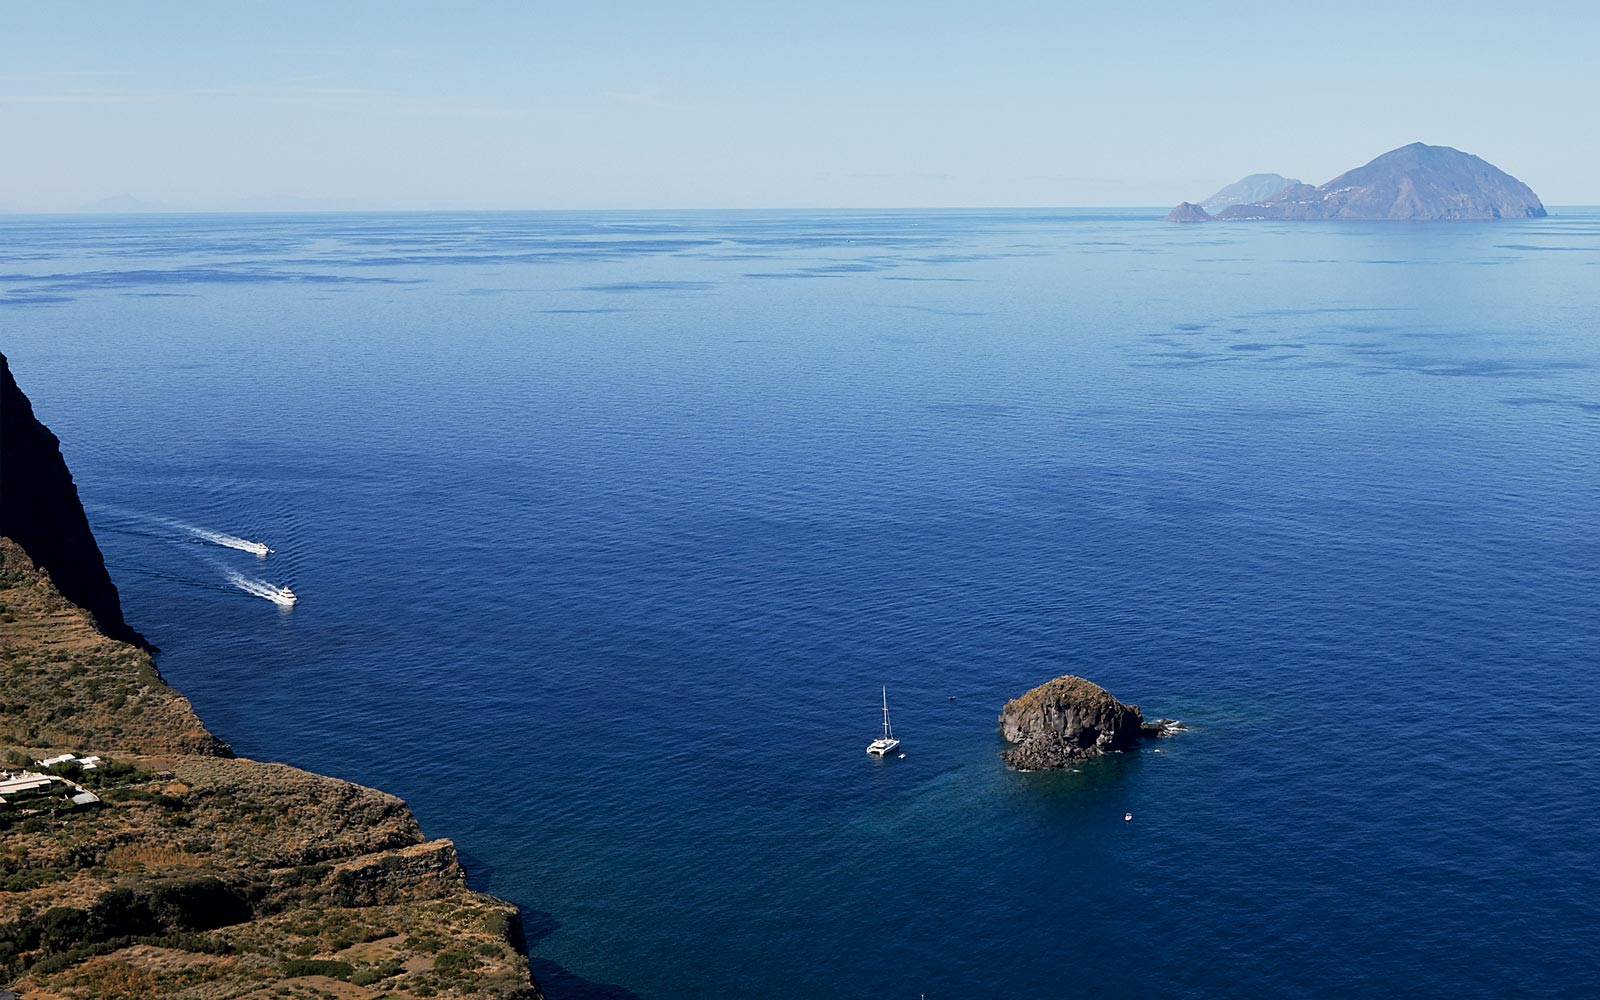 View of the Tyrrhenian Sea from the Aeolian Islands in Italy